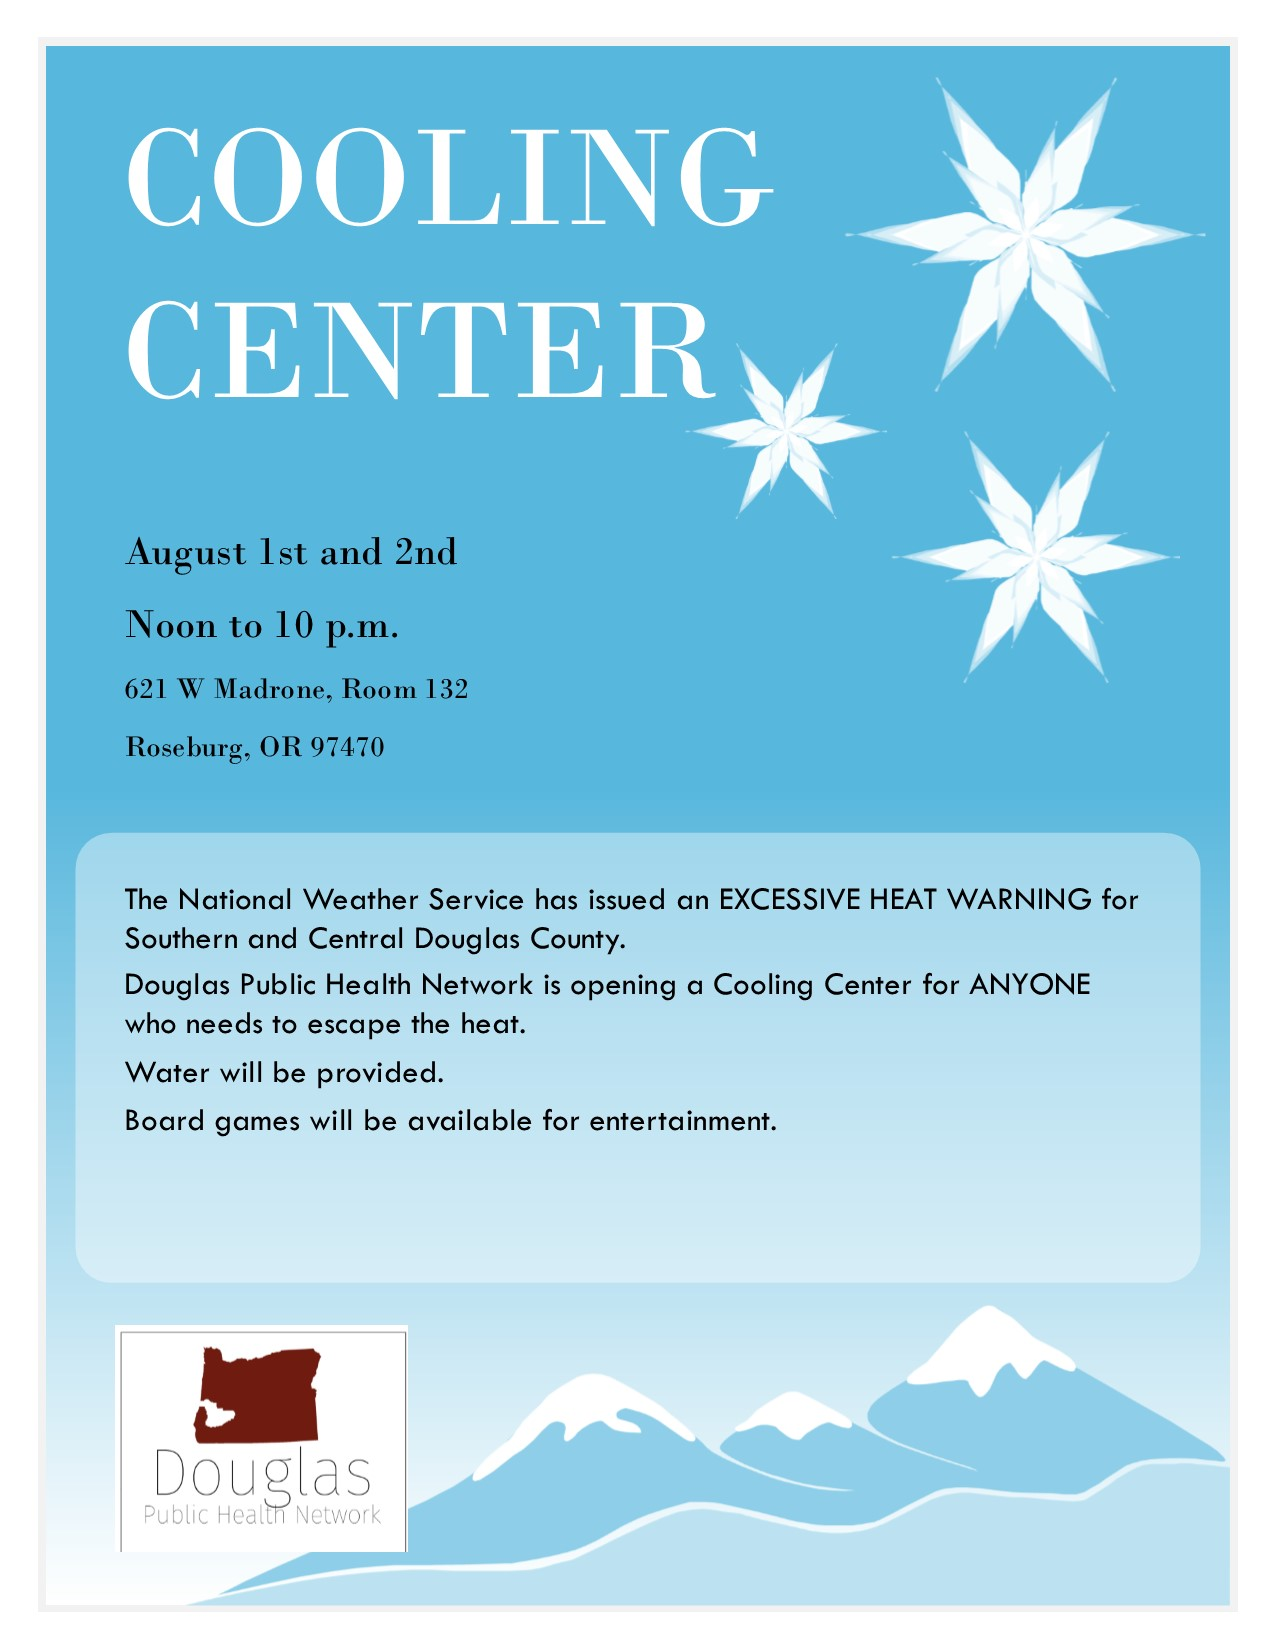 Cooling center August 1st and 2nd noon to 10 pm 621 w madrone st room 132 roseburg or 97470 the national weather service has issued an excessive heat warning for southern and central douglas county douglas public health network is opening a cooling center for anyone who needs to escape the heat water will be provided board games will be available for entertainment douglas public health network logo